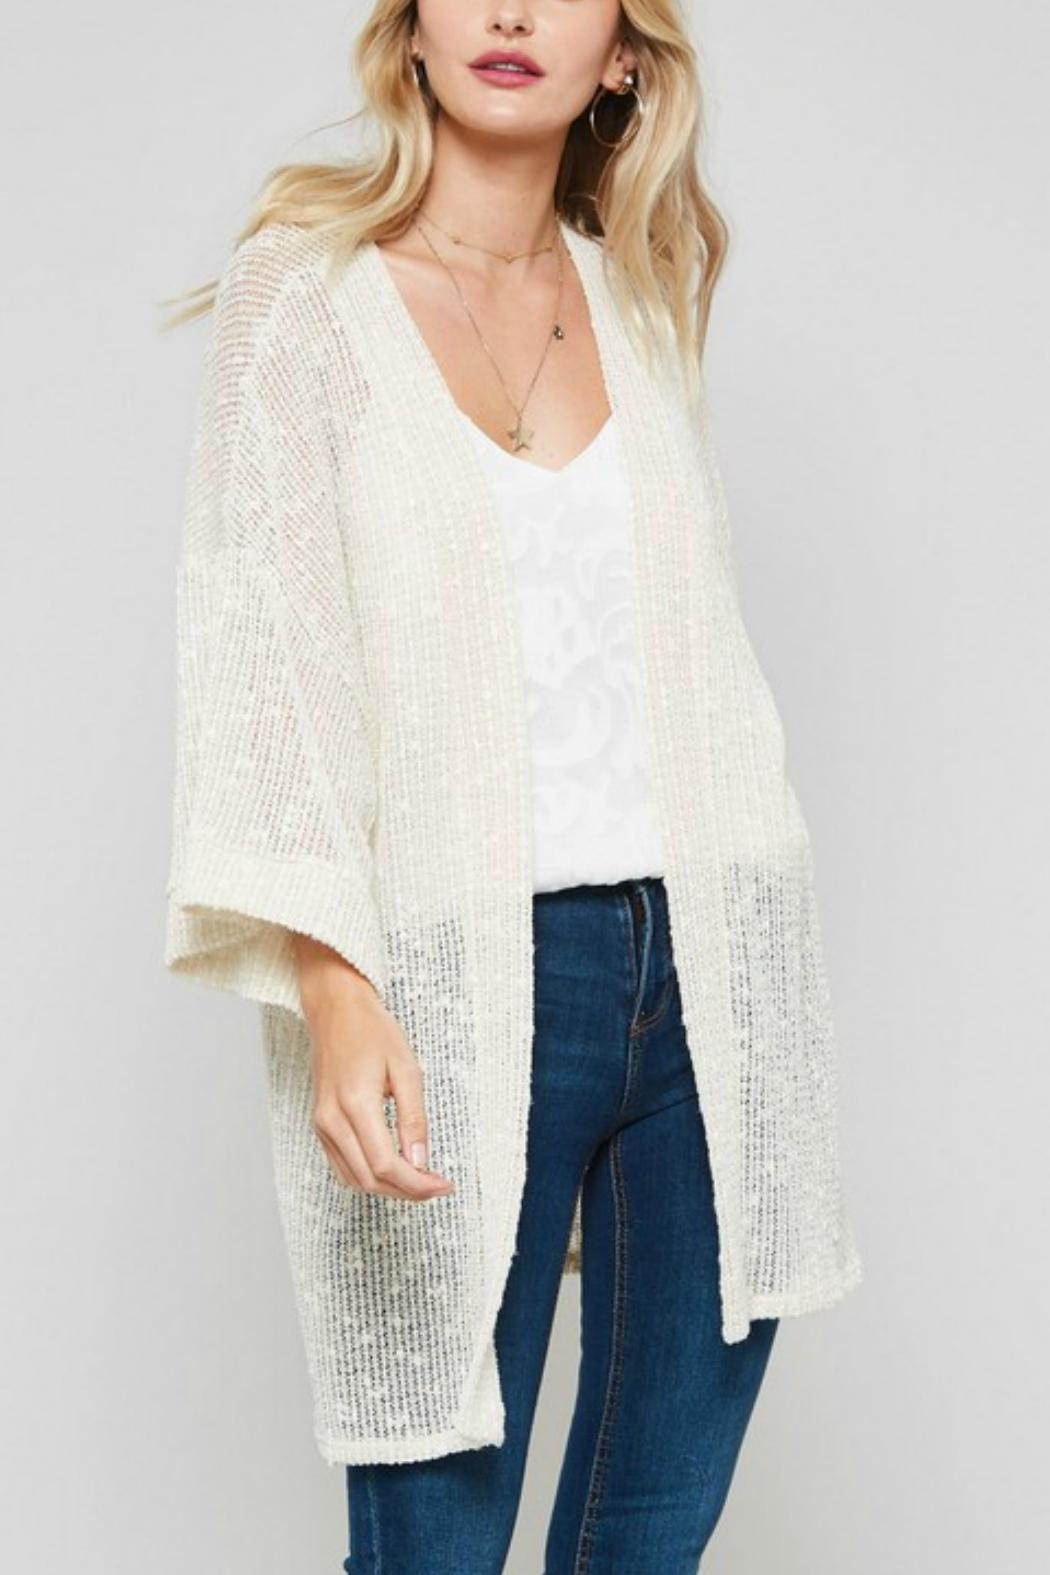 Promesa USA Open-Front Kimono Cardigan - Side Cropped Image